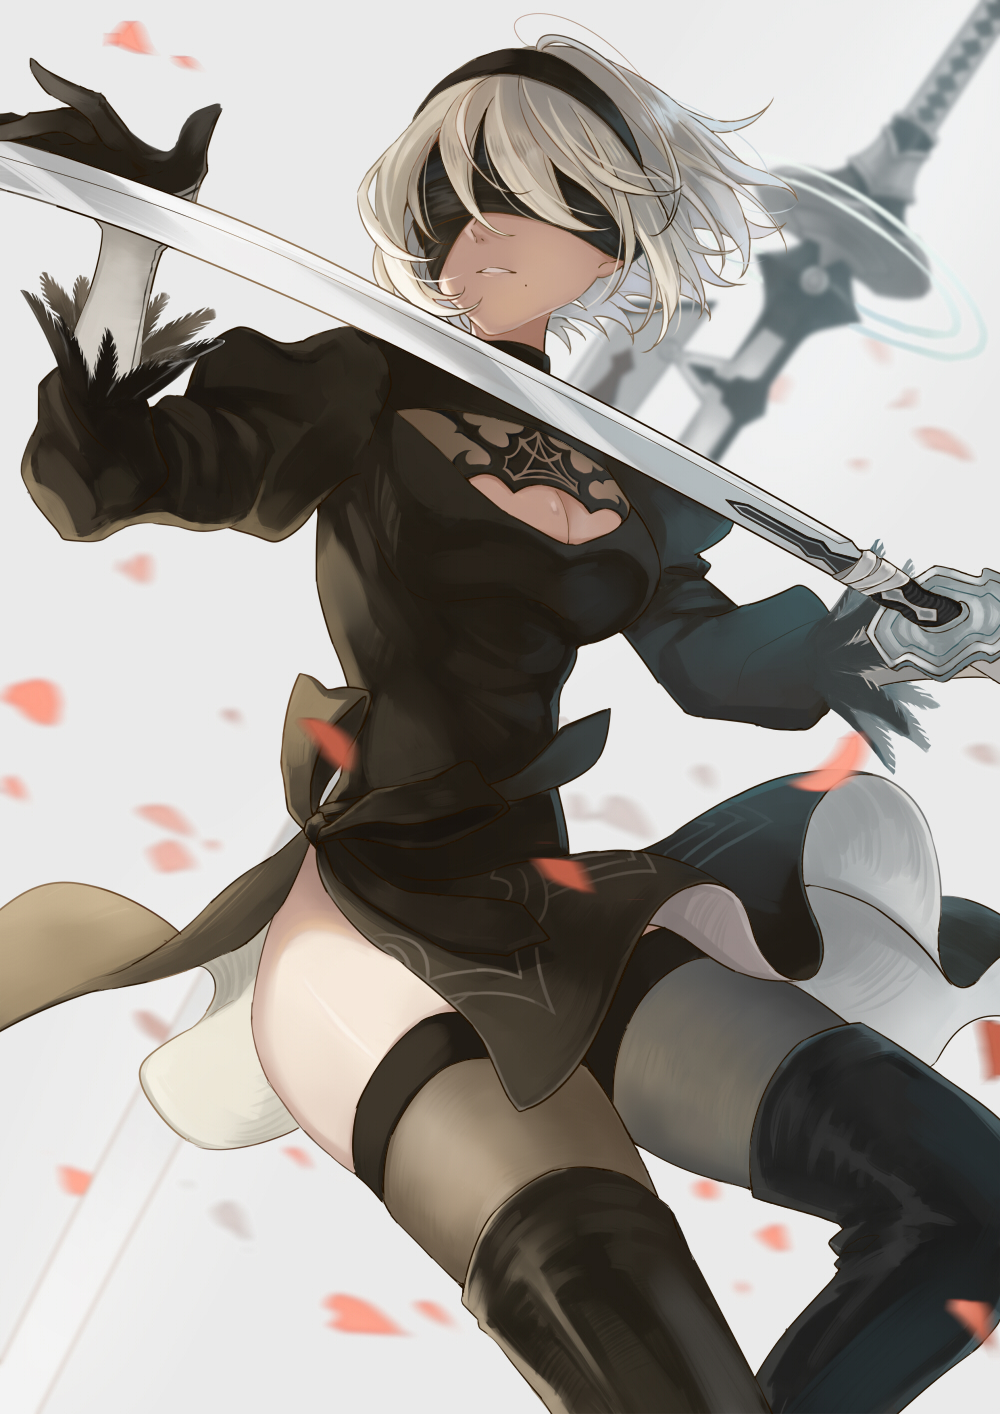 1girl black_dress black_footwear black_legwear blindfold blurry blurry_background blurry_foreground boots breasts cleavage cleavage_cutout commentary dress feather-trimmed_sleeves feet_out_of_frame fighting_stance hairband highres hips holding holding_sword holding_weapon juliet_sleeves large_breasts long_sleeves mole mole_under_mouth nier_(series) nier_automata parted_lips petals puffy_sleeves shioha solo sword teeth thigh-highs weapon white_background white_hair yorha_no._2_type_b